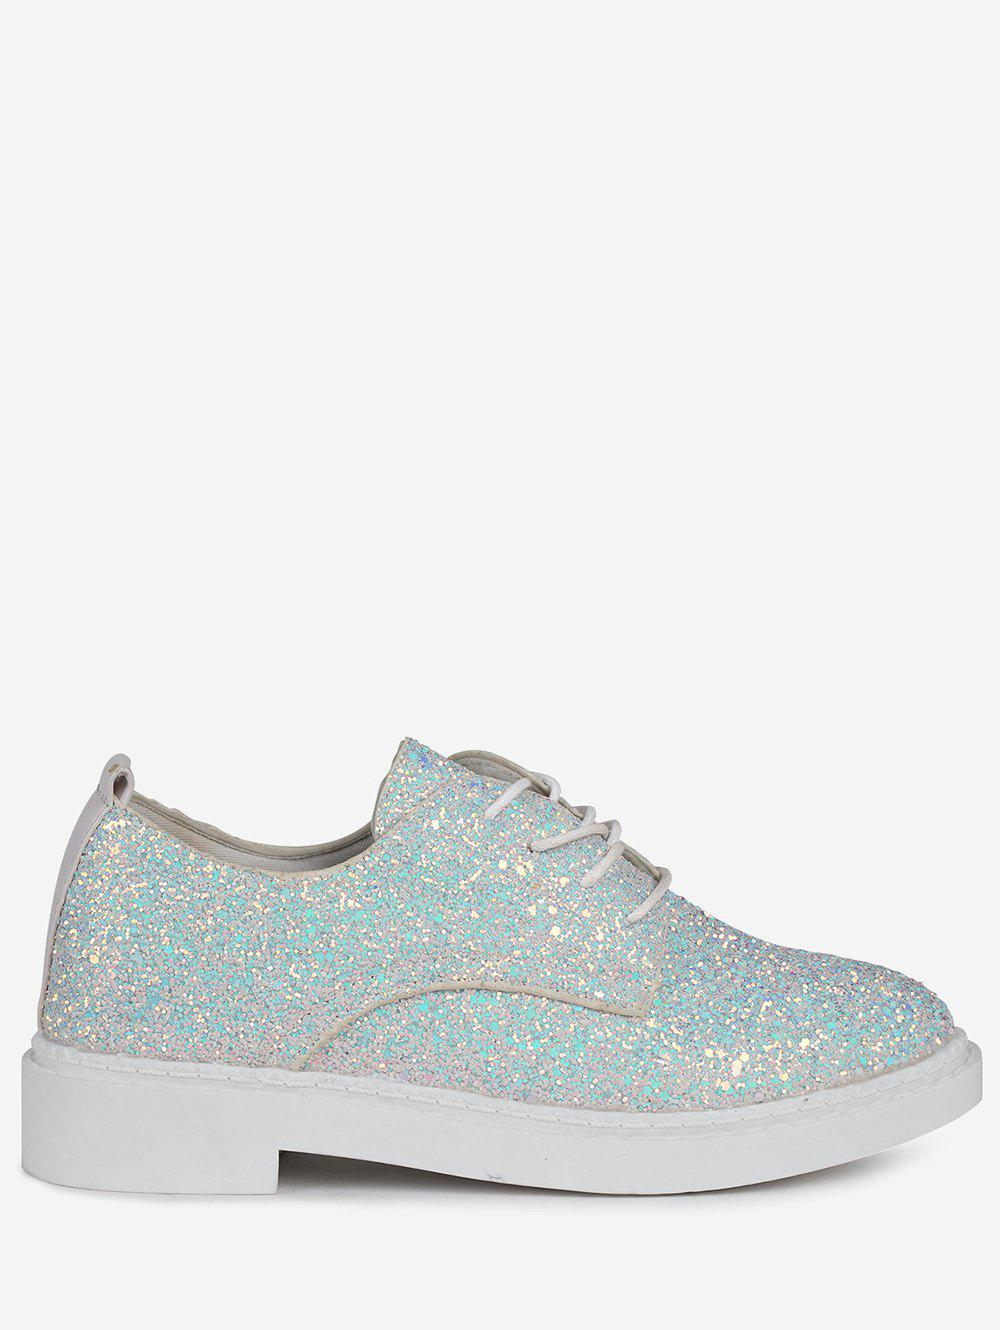 Buy Tie Up Low Top Glitter Flat Shoes